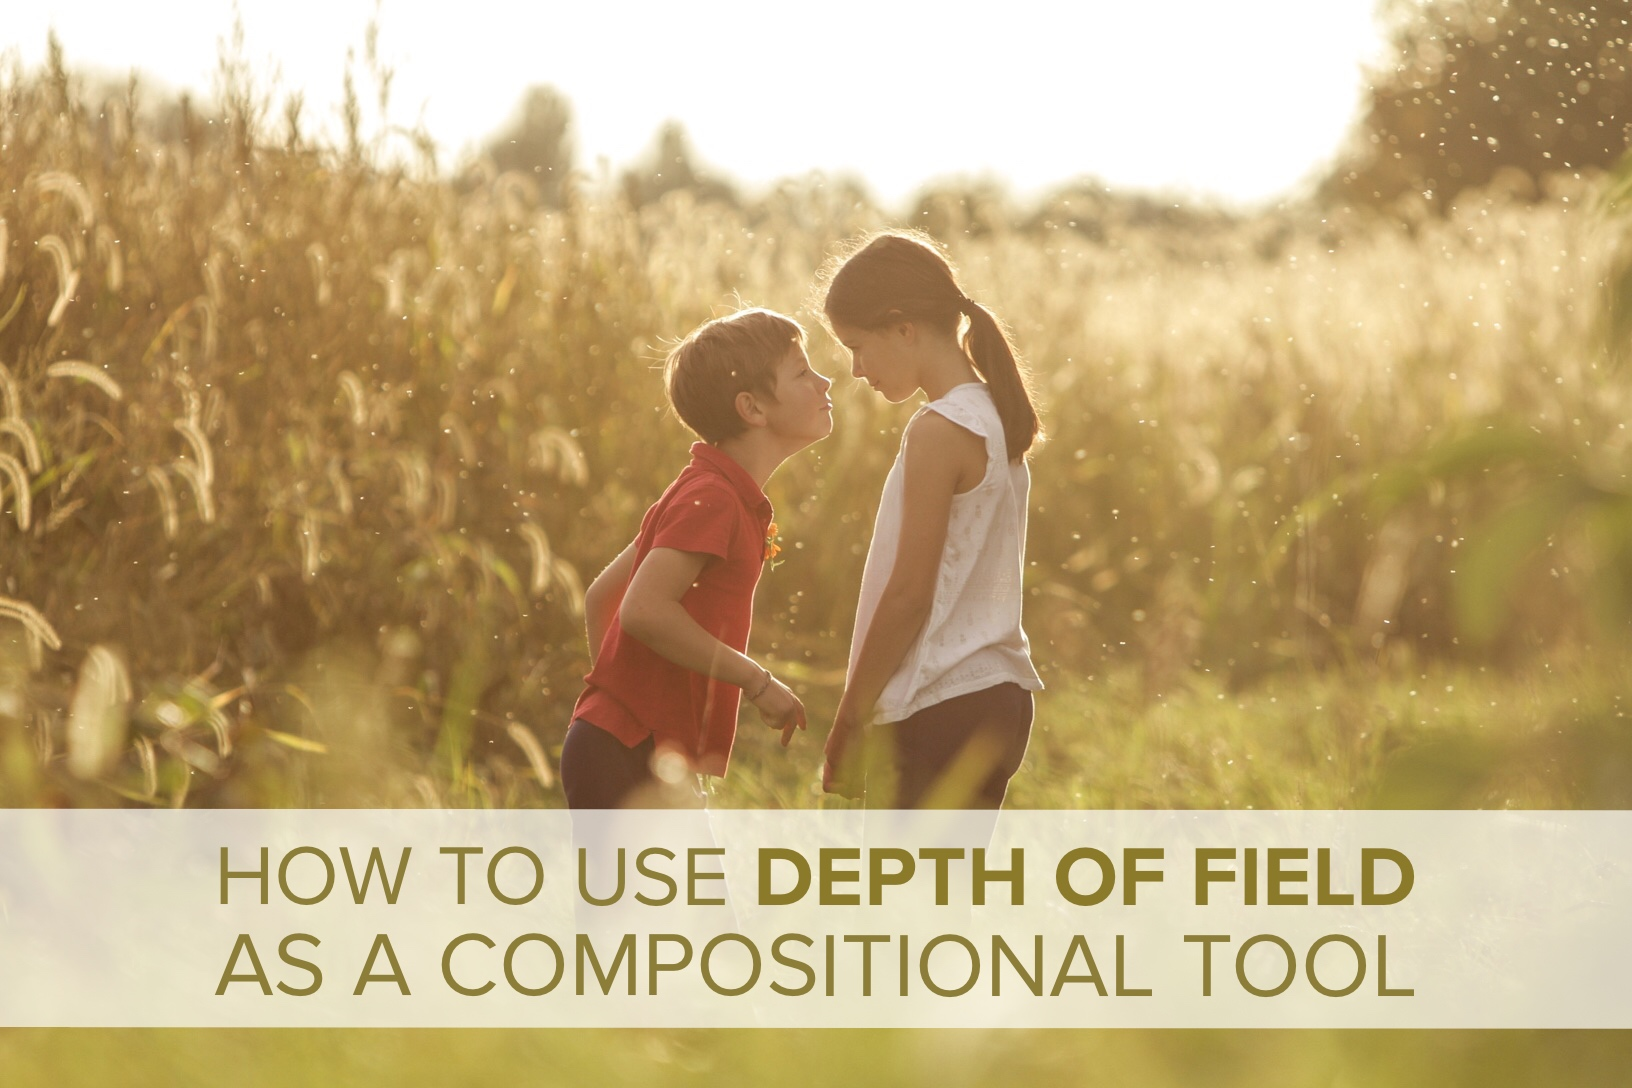 Using Depth of Field as a Compositional Tool